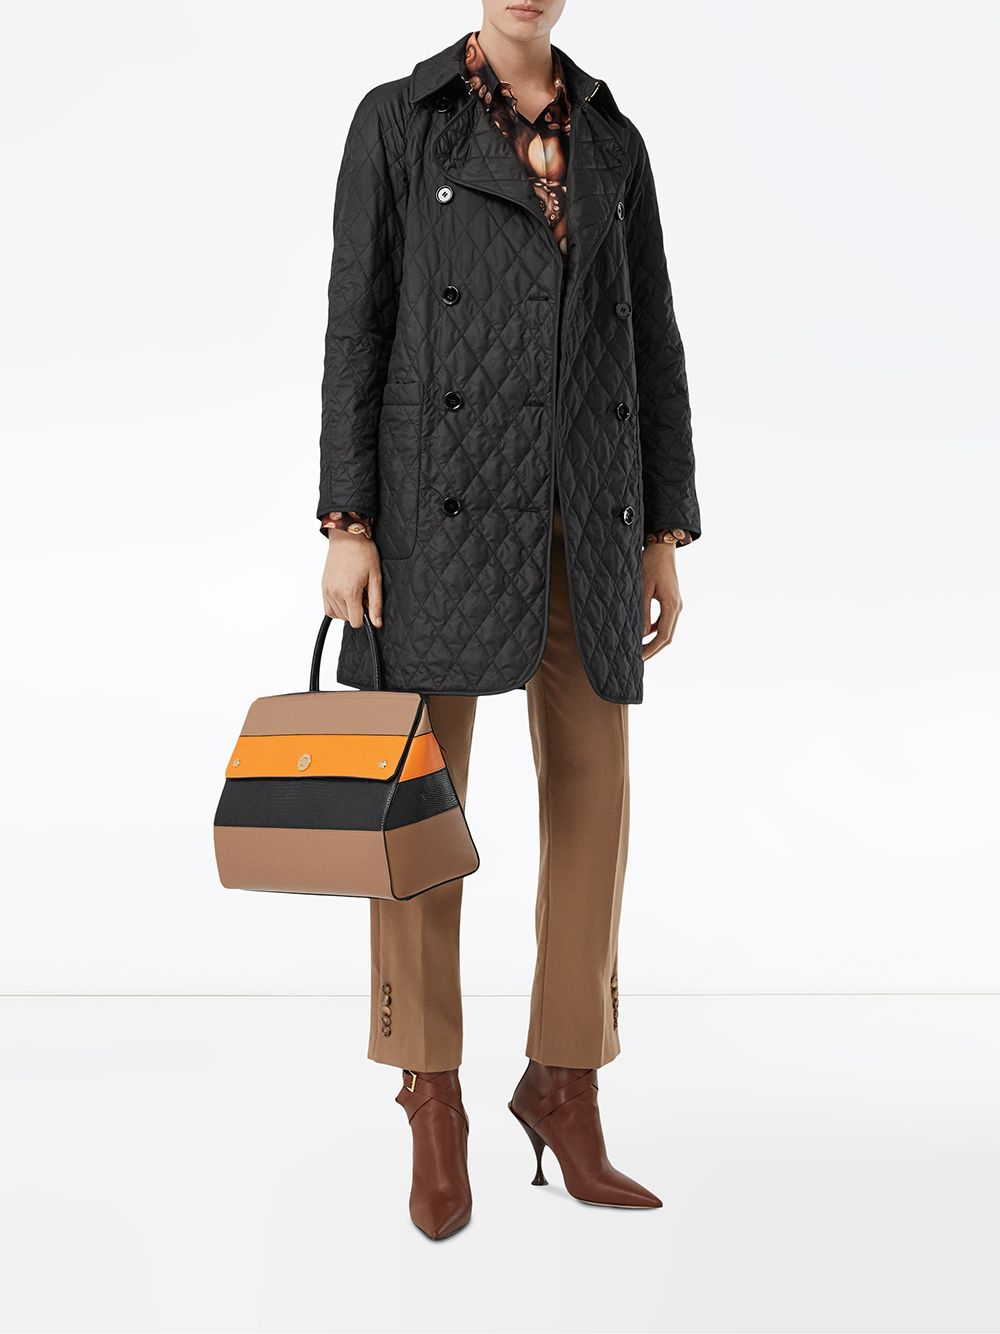 Immagine di Burberry | Tything_836:114533